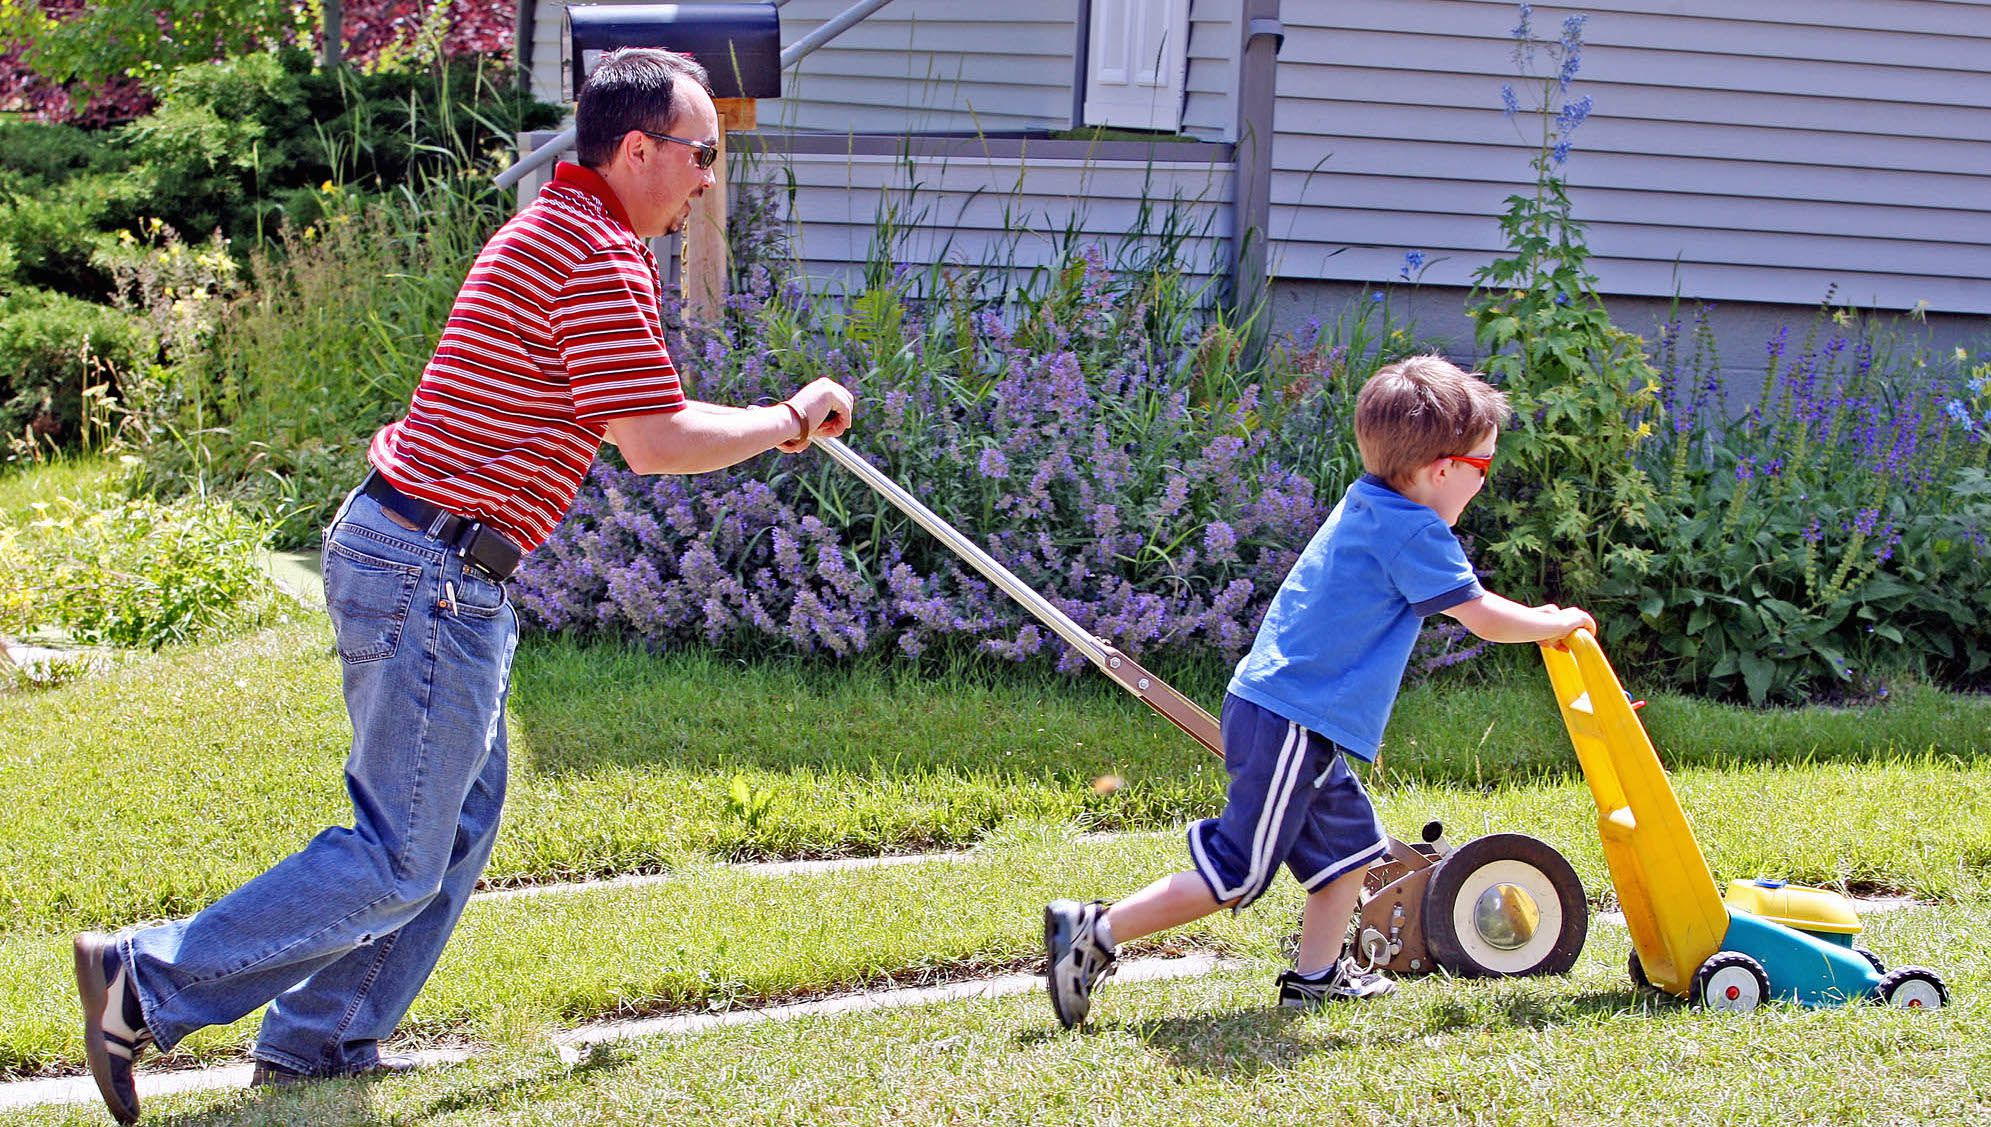 Logan Mack, right, races his father George with a toy lawnmower as the two manicure the family's front lawn Tuesday Aug. 4, 2009 in Laramie, Wyo. (AP Photo/Laramie Boomerang, Andy Carpenean